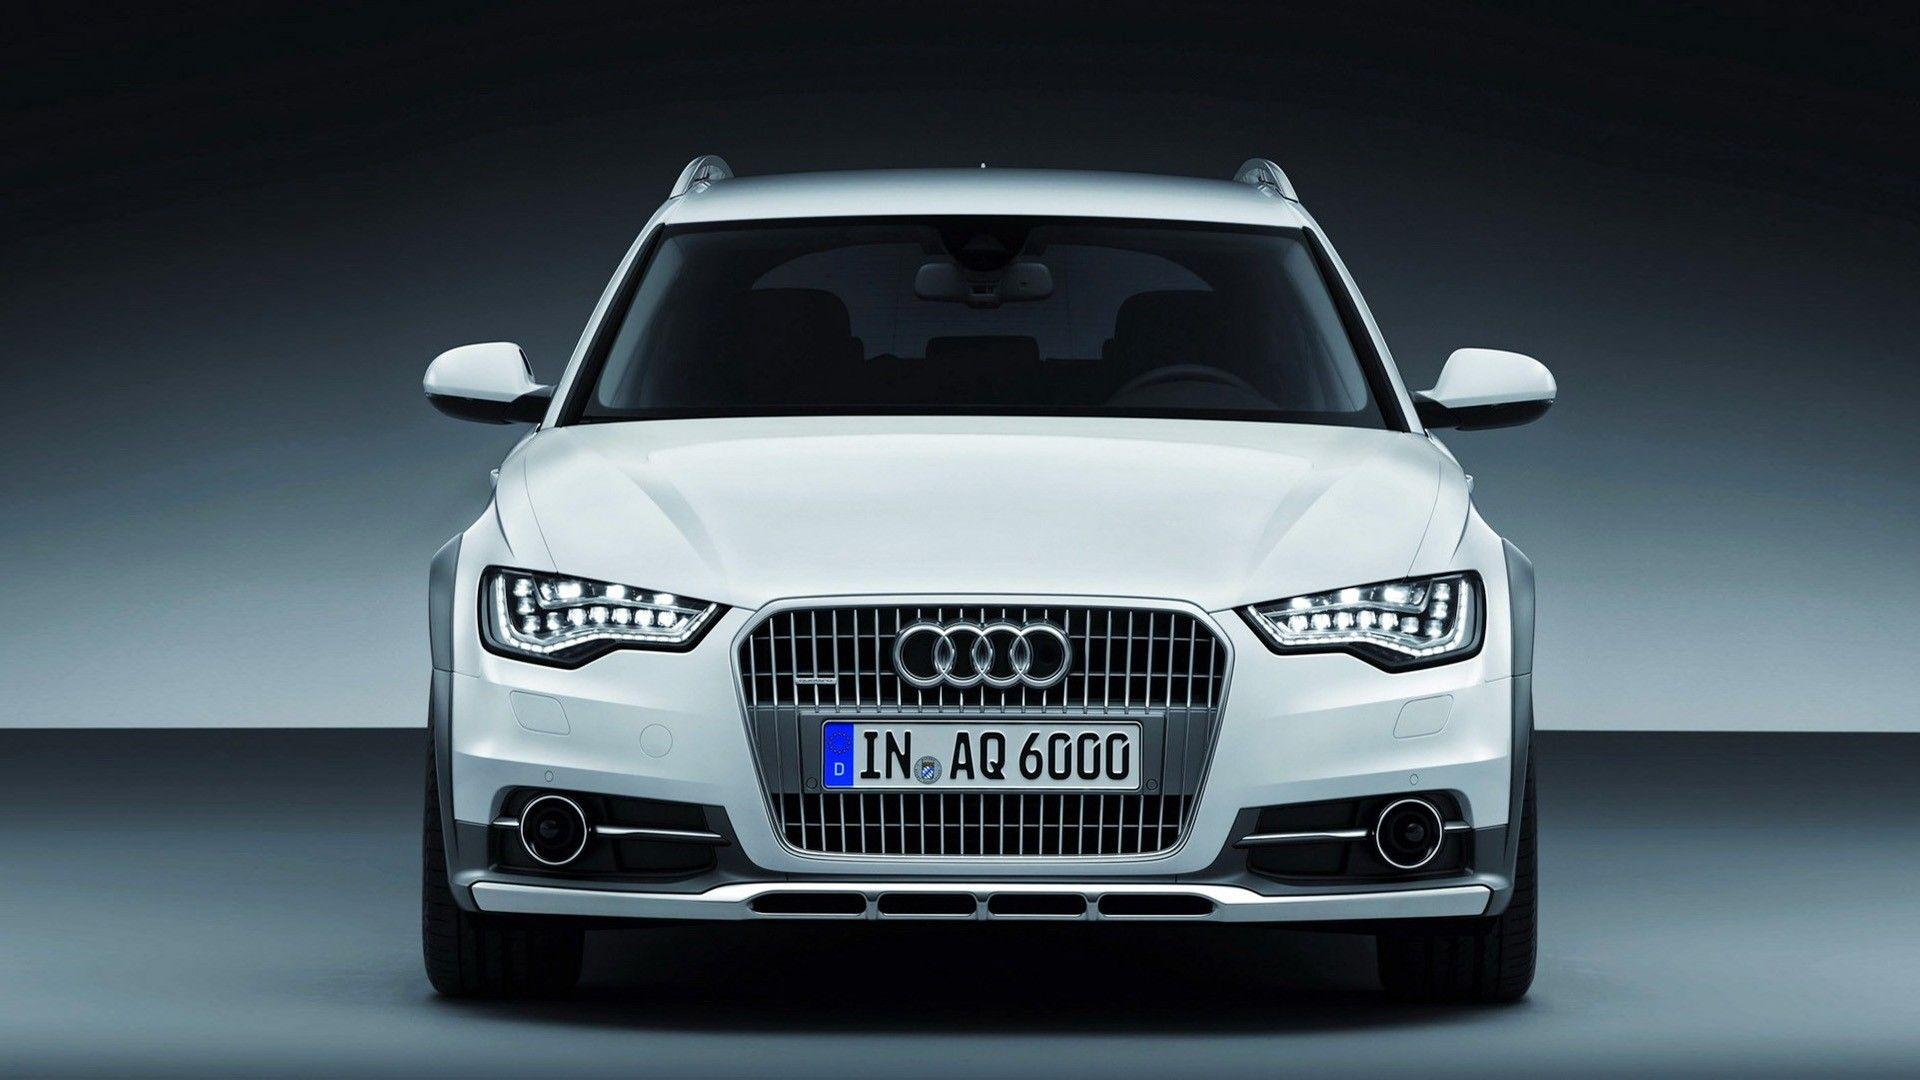 Awesome Audi Cars Full Hd Wallpapers High Quality Backgrounds A